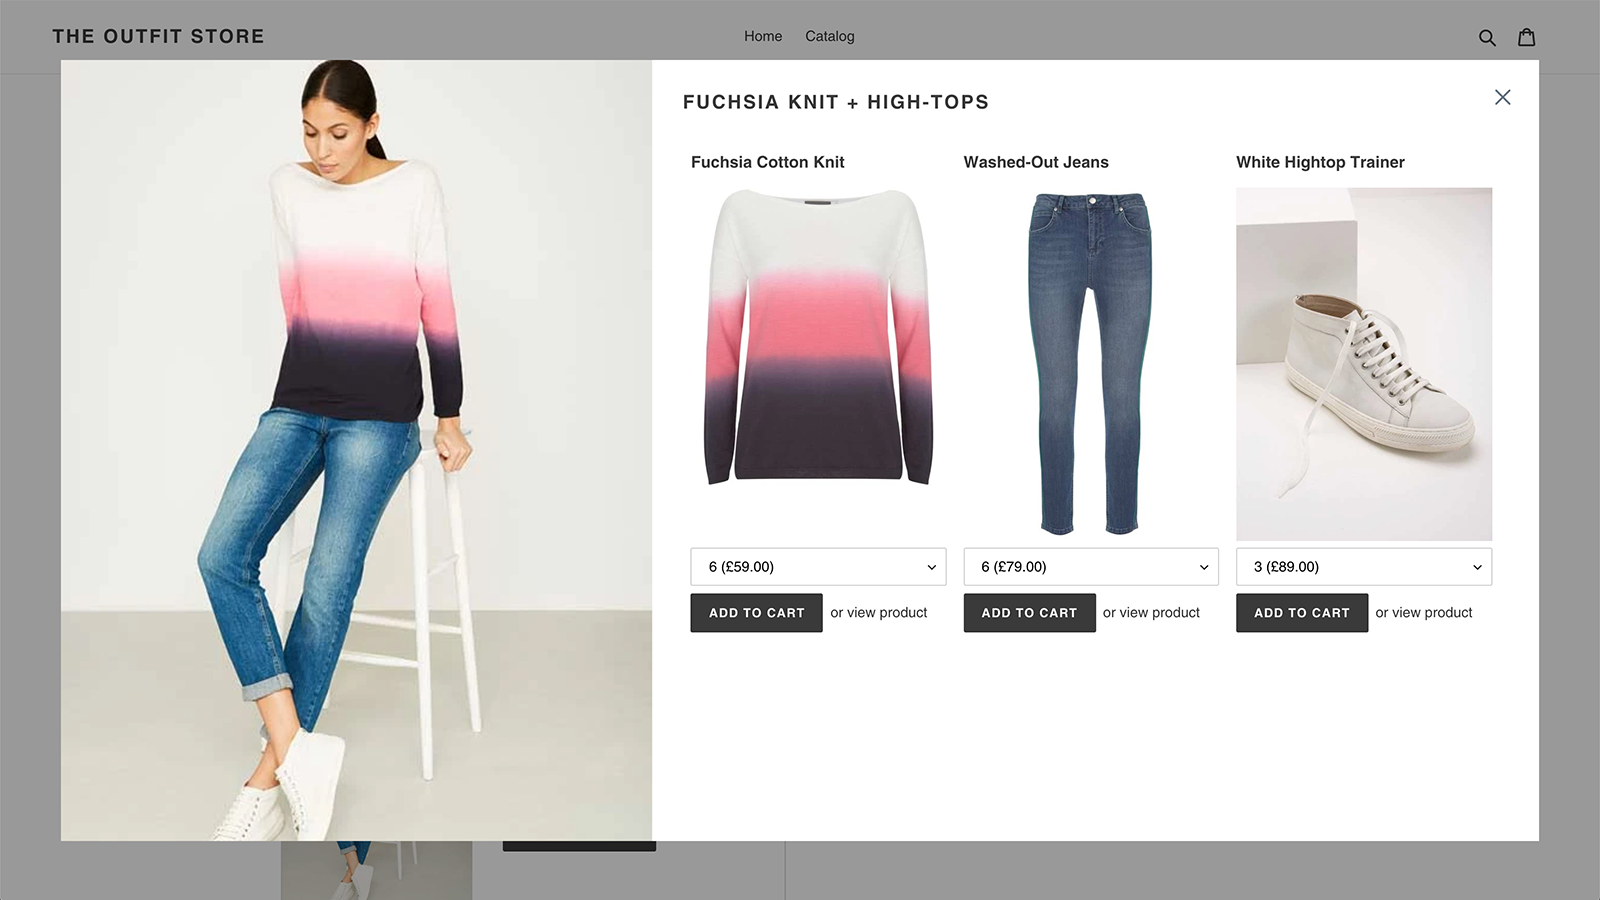 Upsell complimentary items straight from your product pages